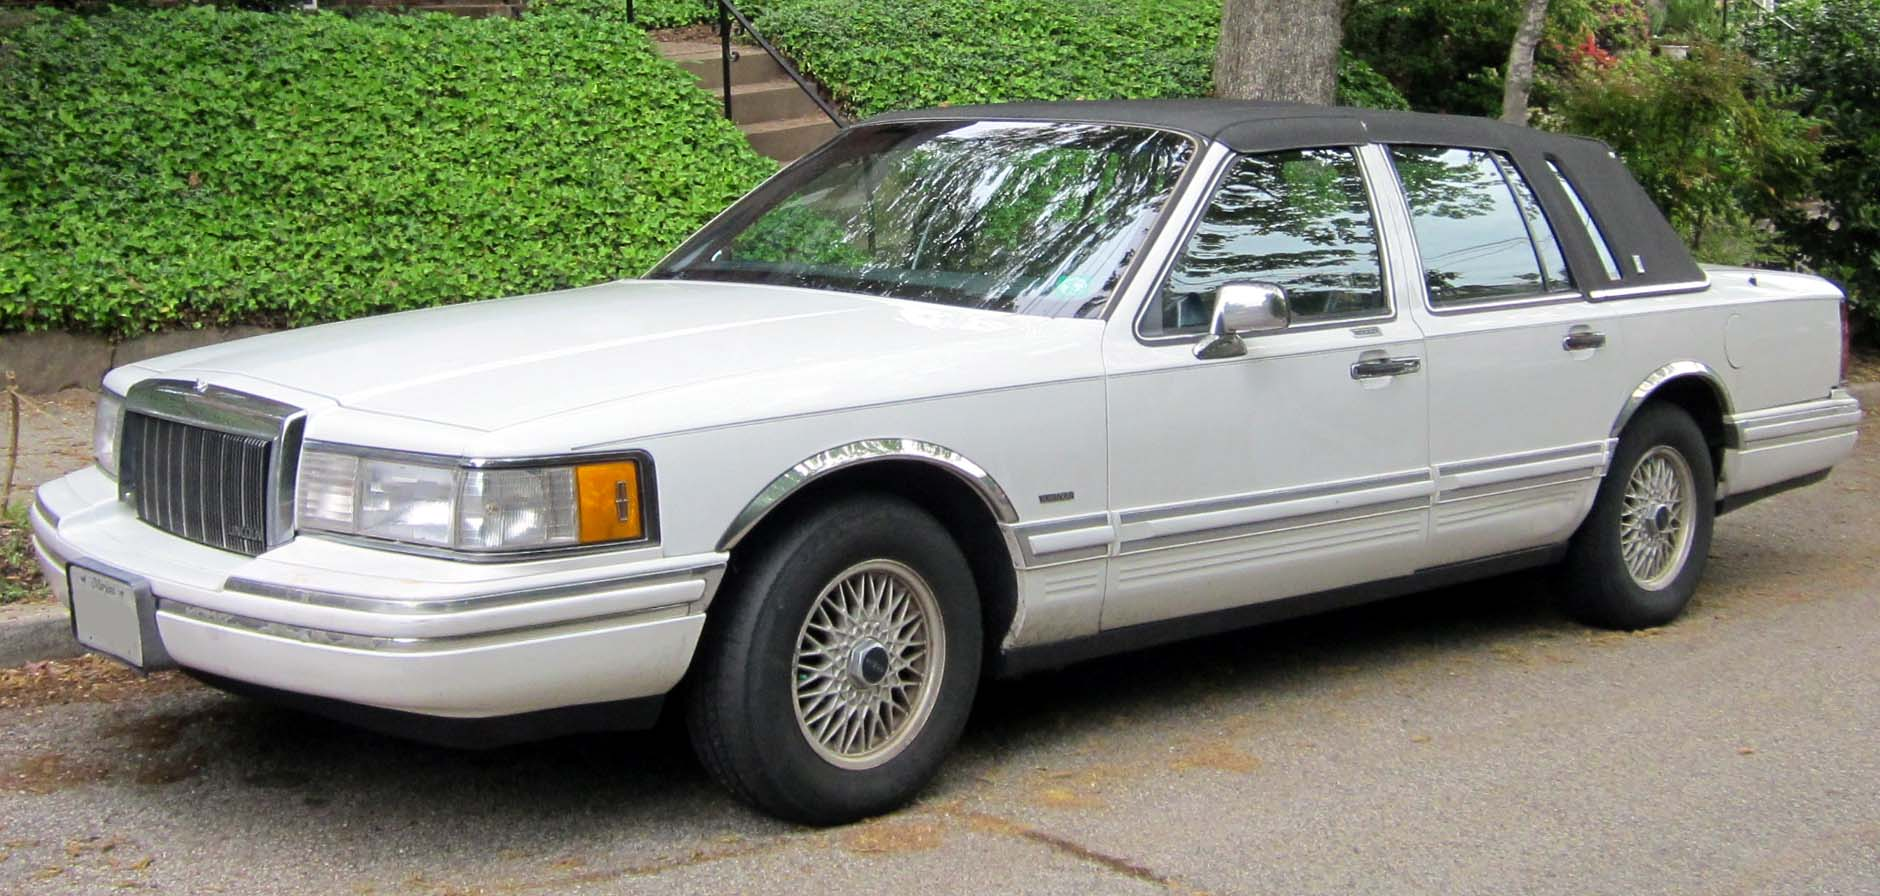 1990 lincoln town car size 197 kb resolution 1880x896 type link file src